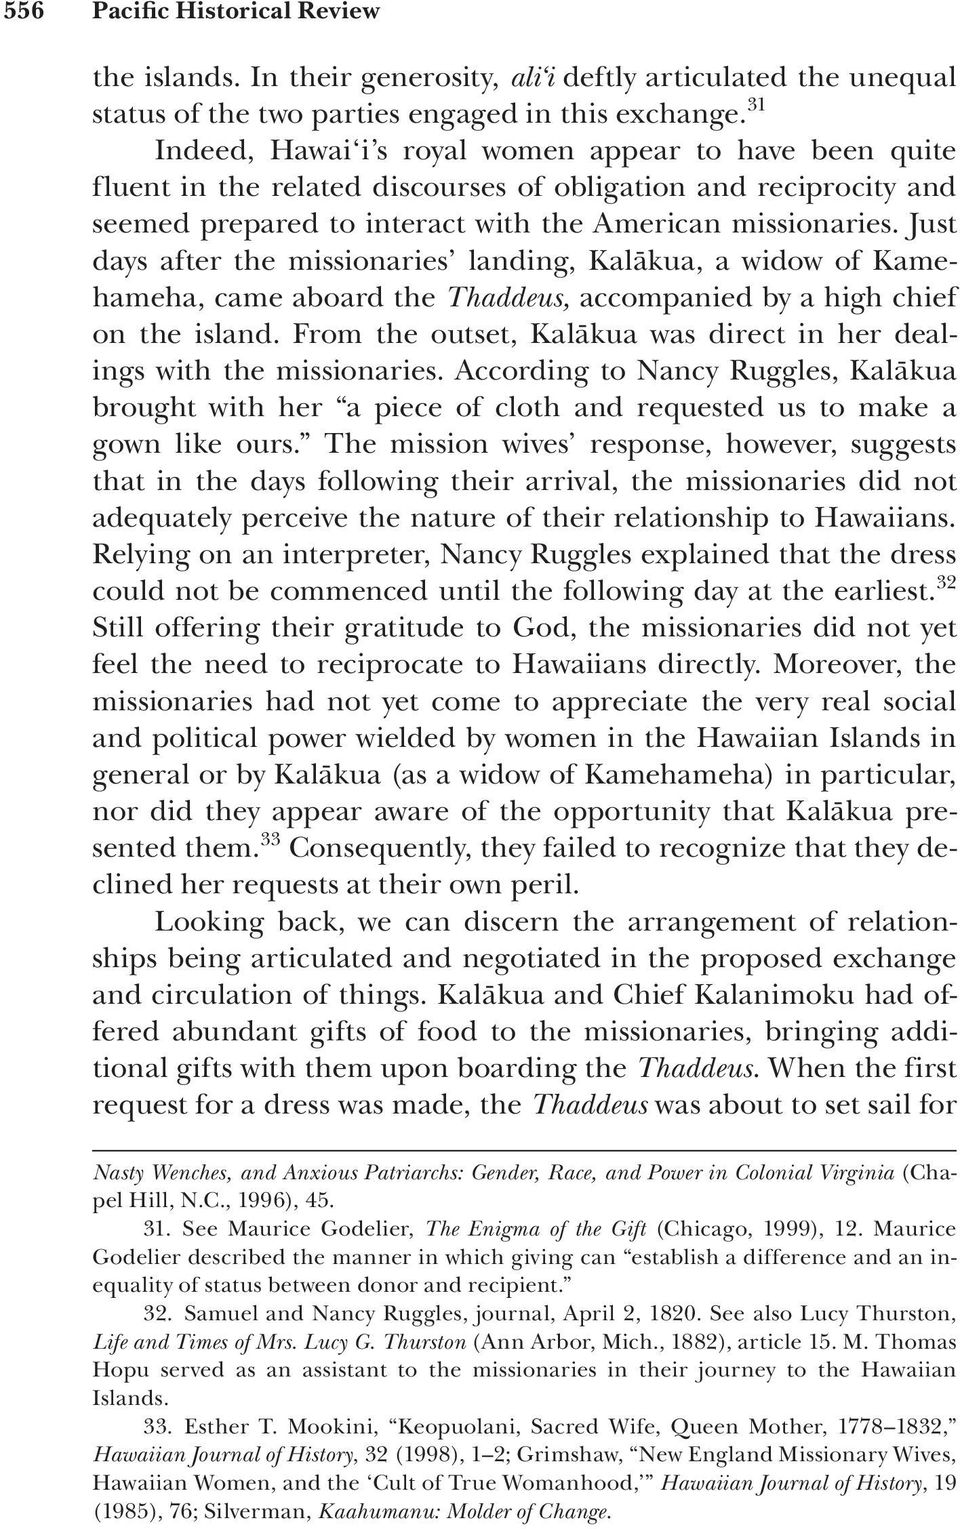 Just days after the missionaries landing, Kalākua, a widow of Kamehameha, came aboard the Thaddeus, accompanied by a high chief on the island.